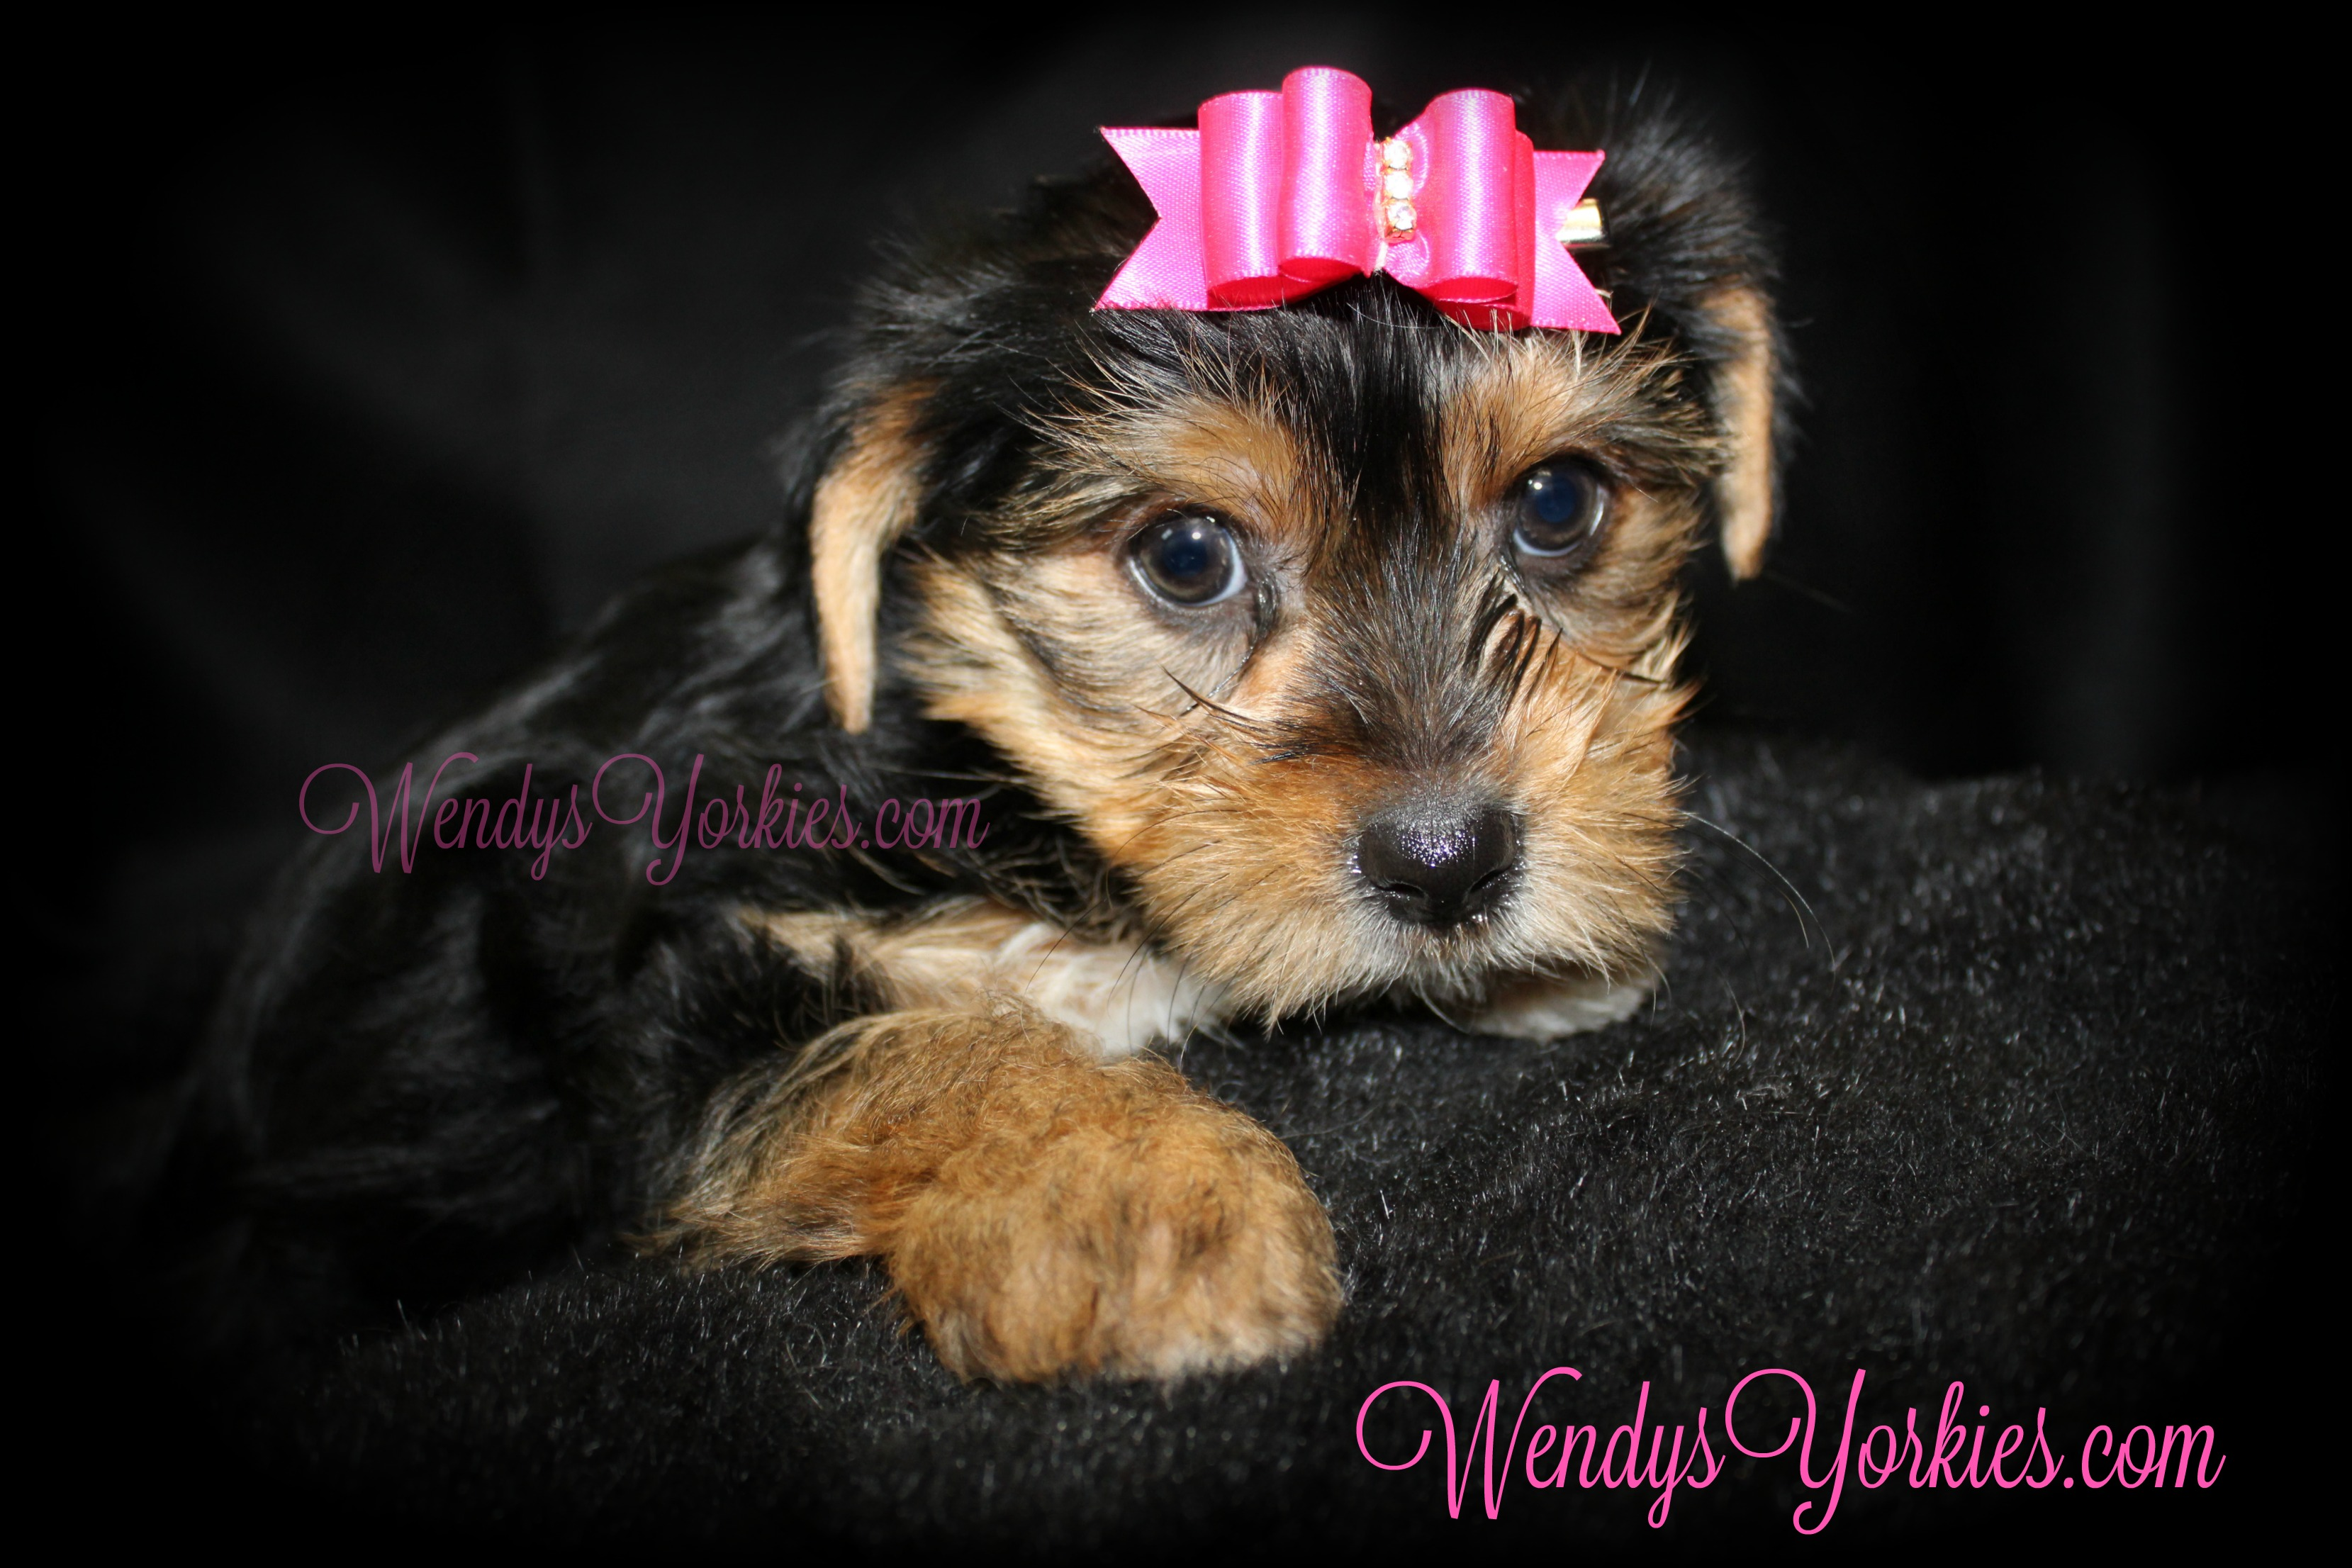 Yorkie puppy for sale, WendysYorkies.com, TH F3